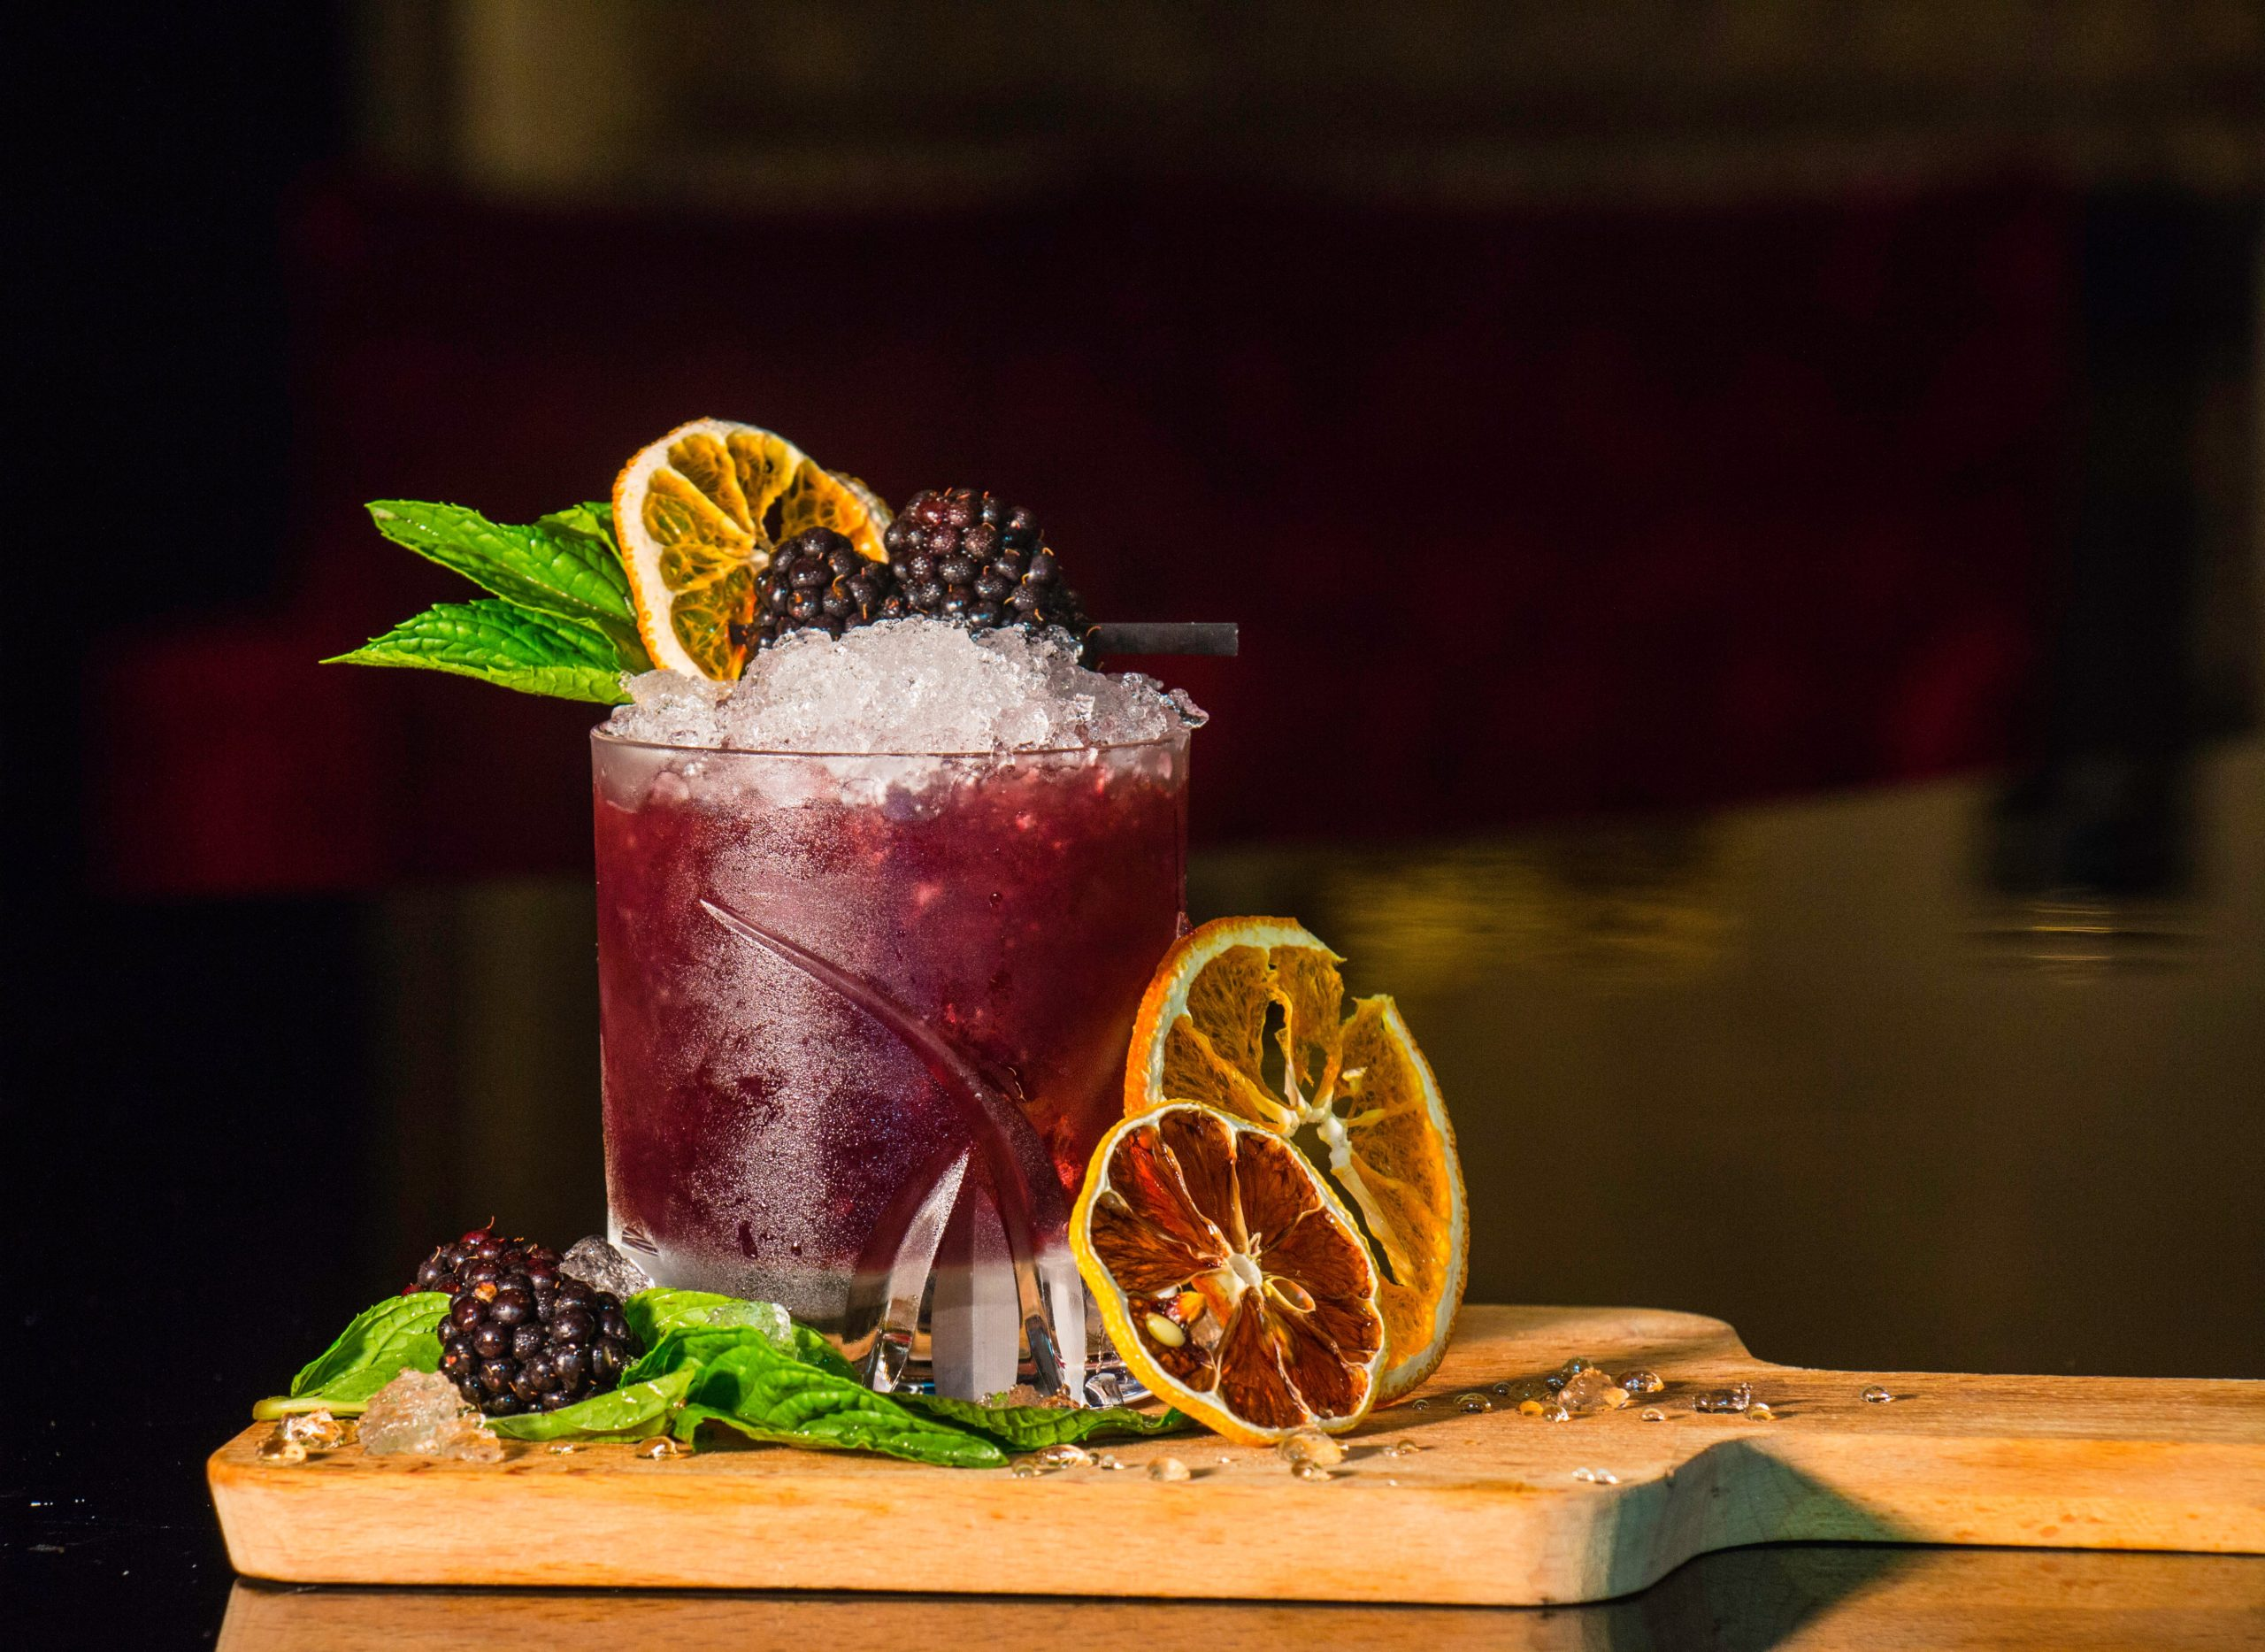 Cocktail with fruit